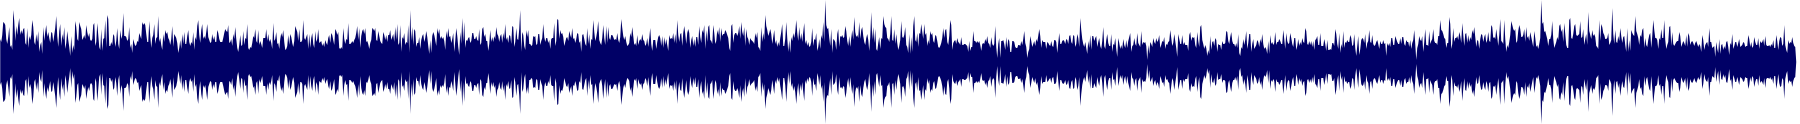 waveform of track #76079